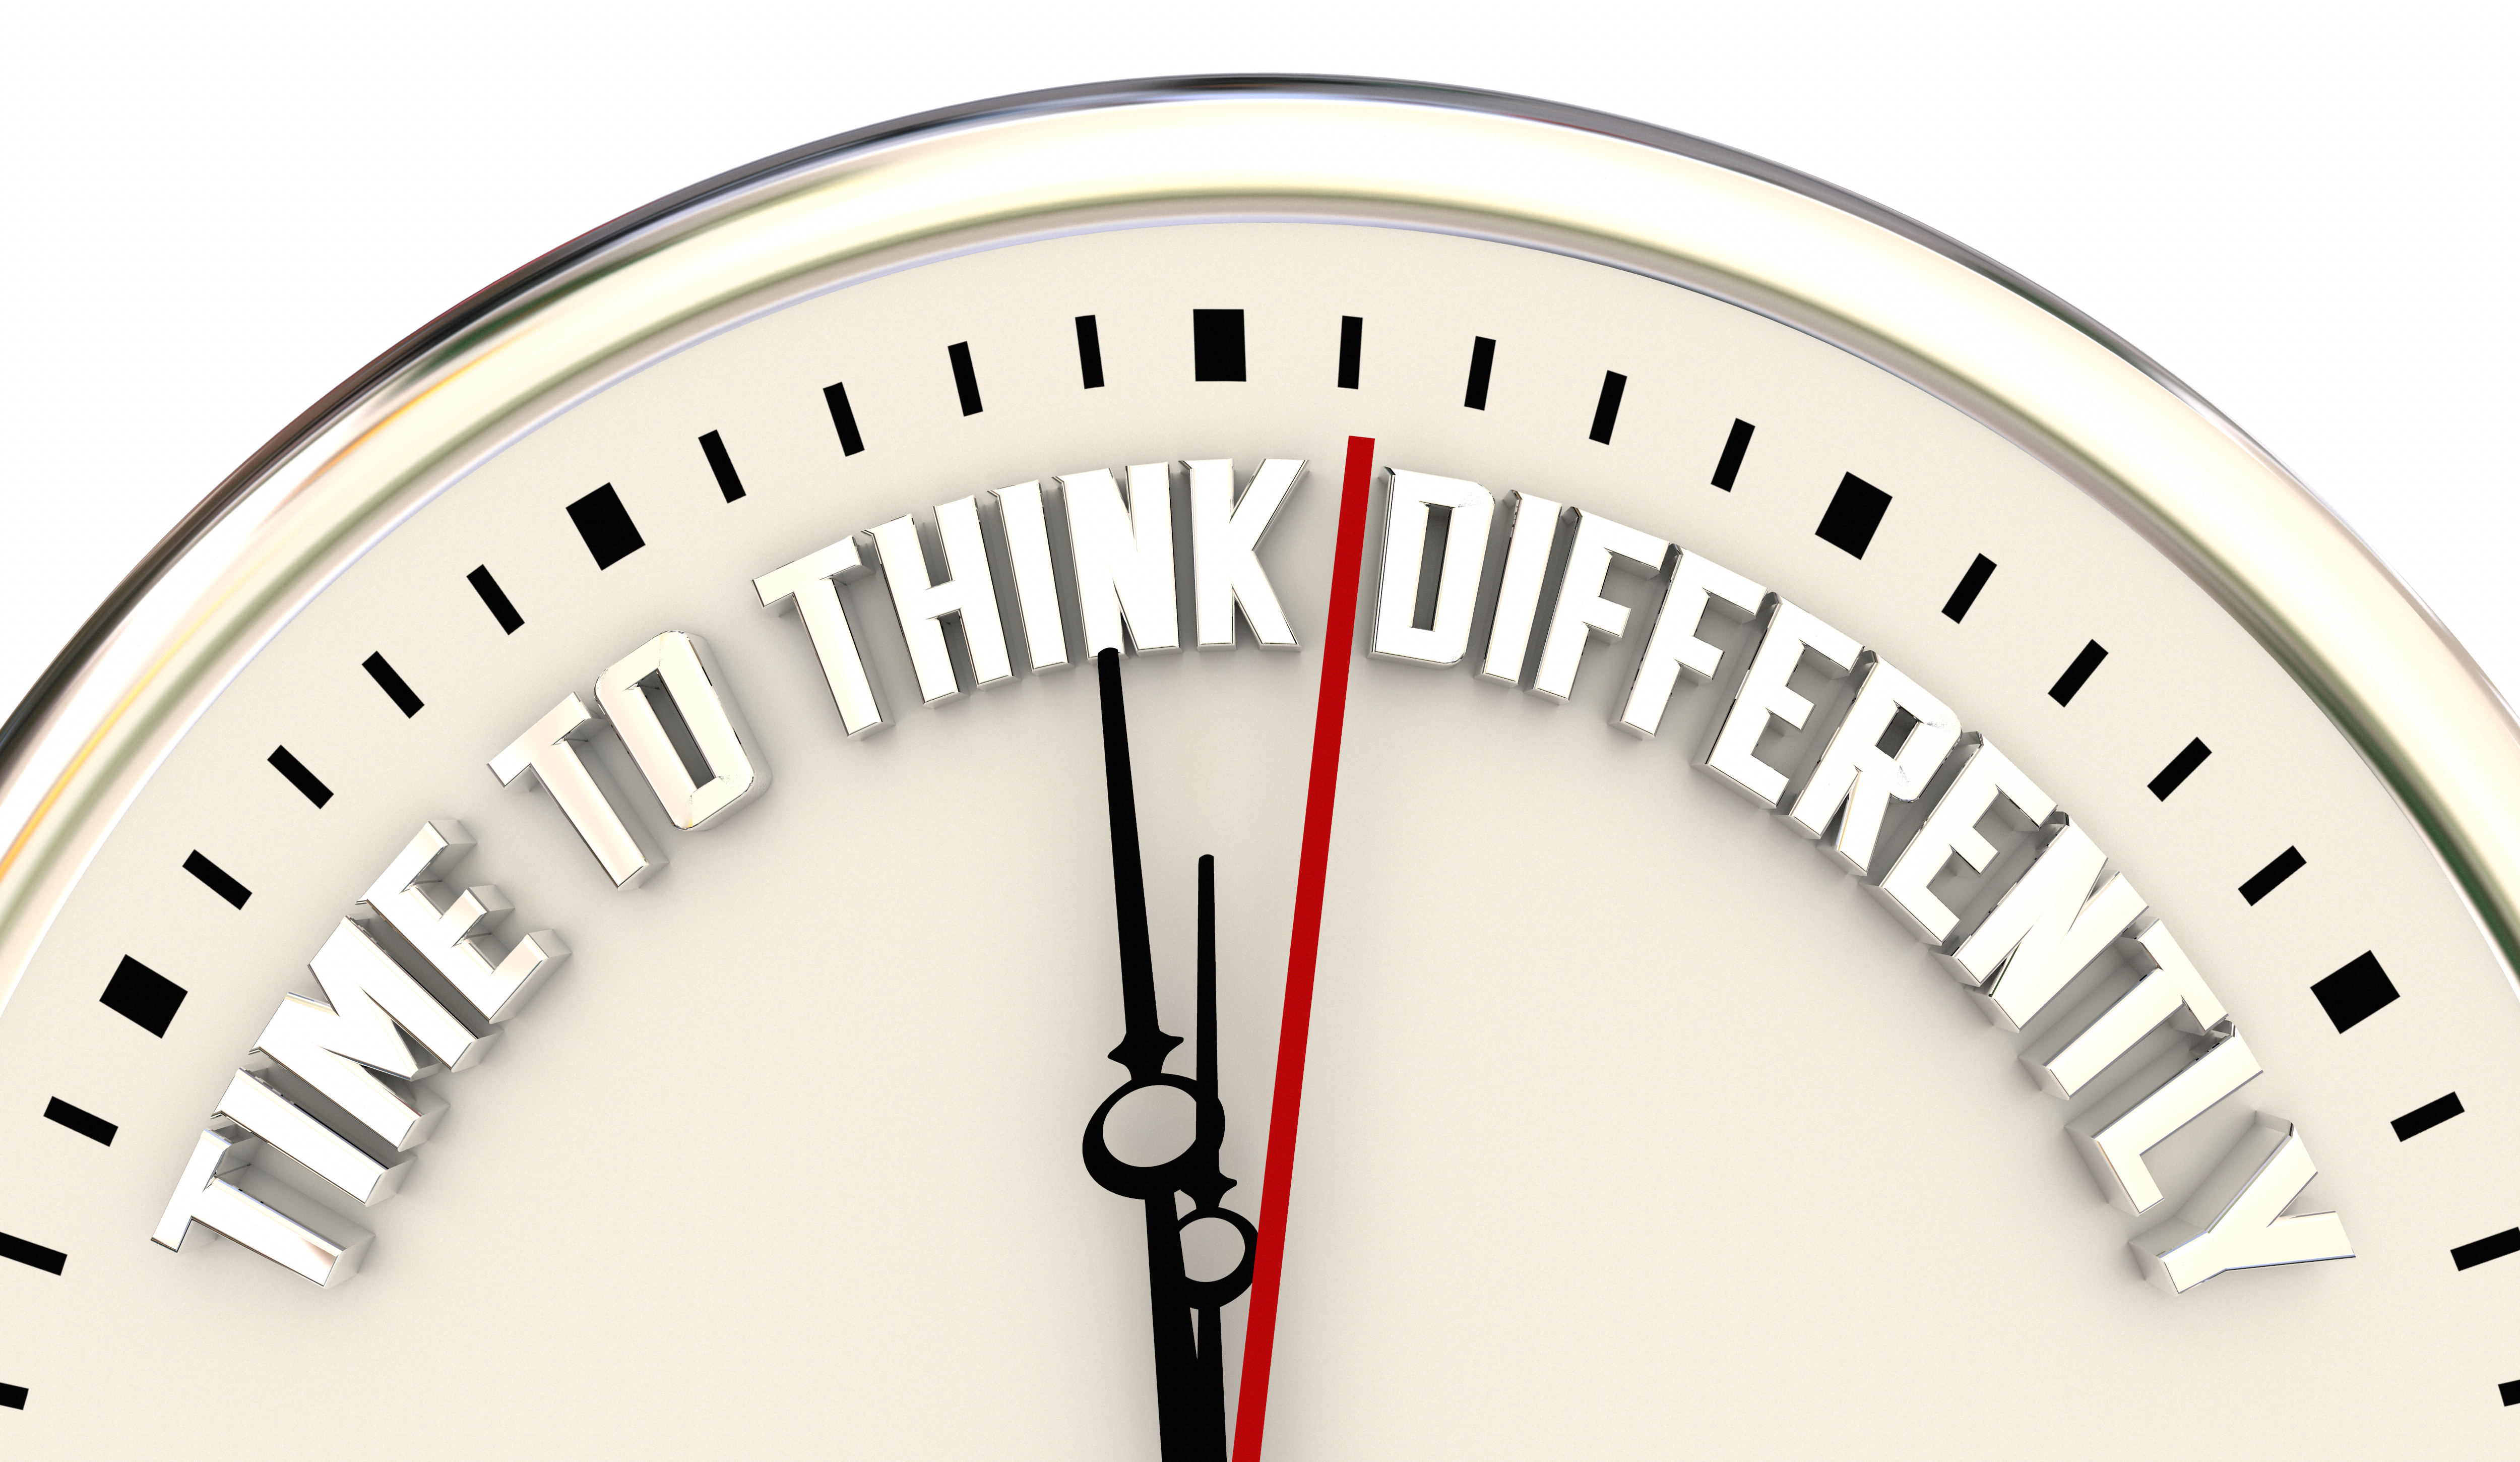 Time to Think Differently Clock